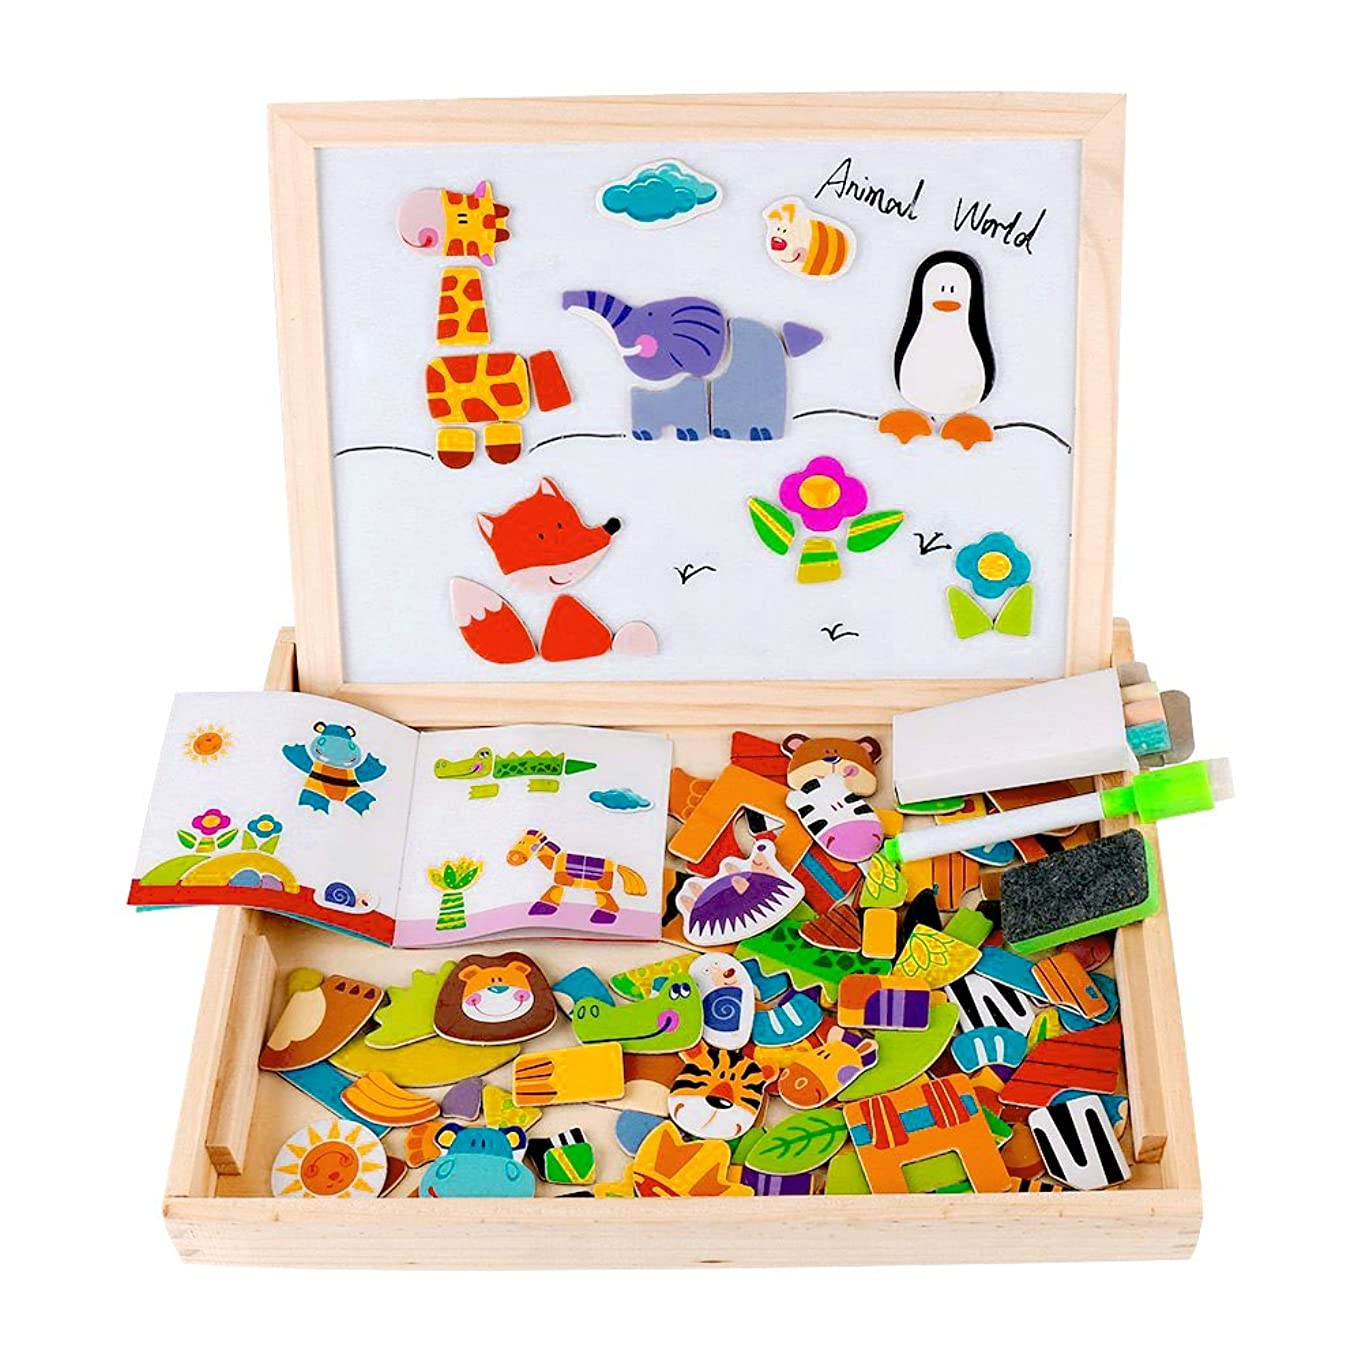 Diwenhouse Magnetic Jigsaw Puzzle Toddler Toys, Multifunctional Wooden Drawing Easel Double Sided with Dry Erase Board & Chalkboard Perfect Educational Toy for Kids (Forest)